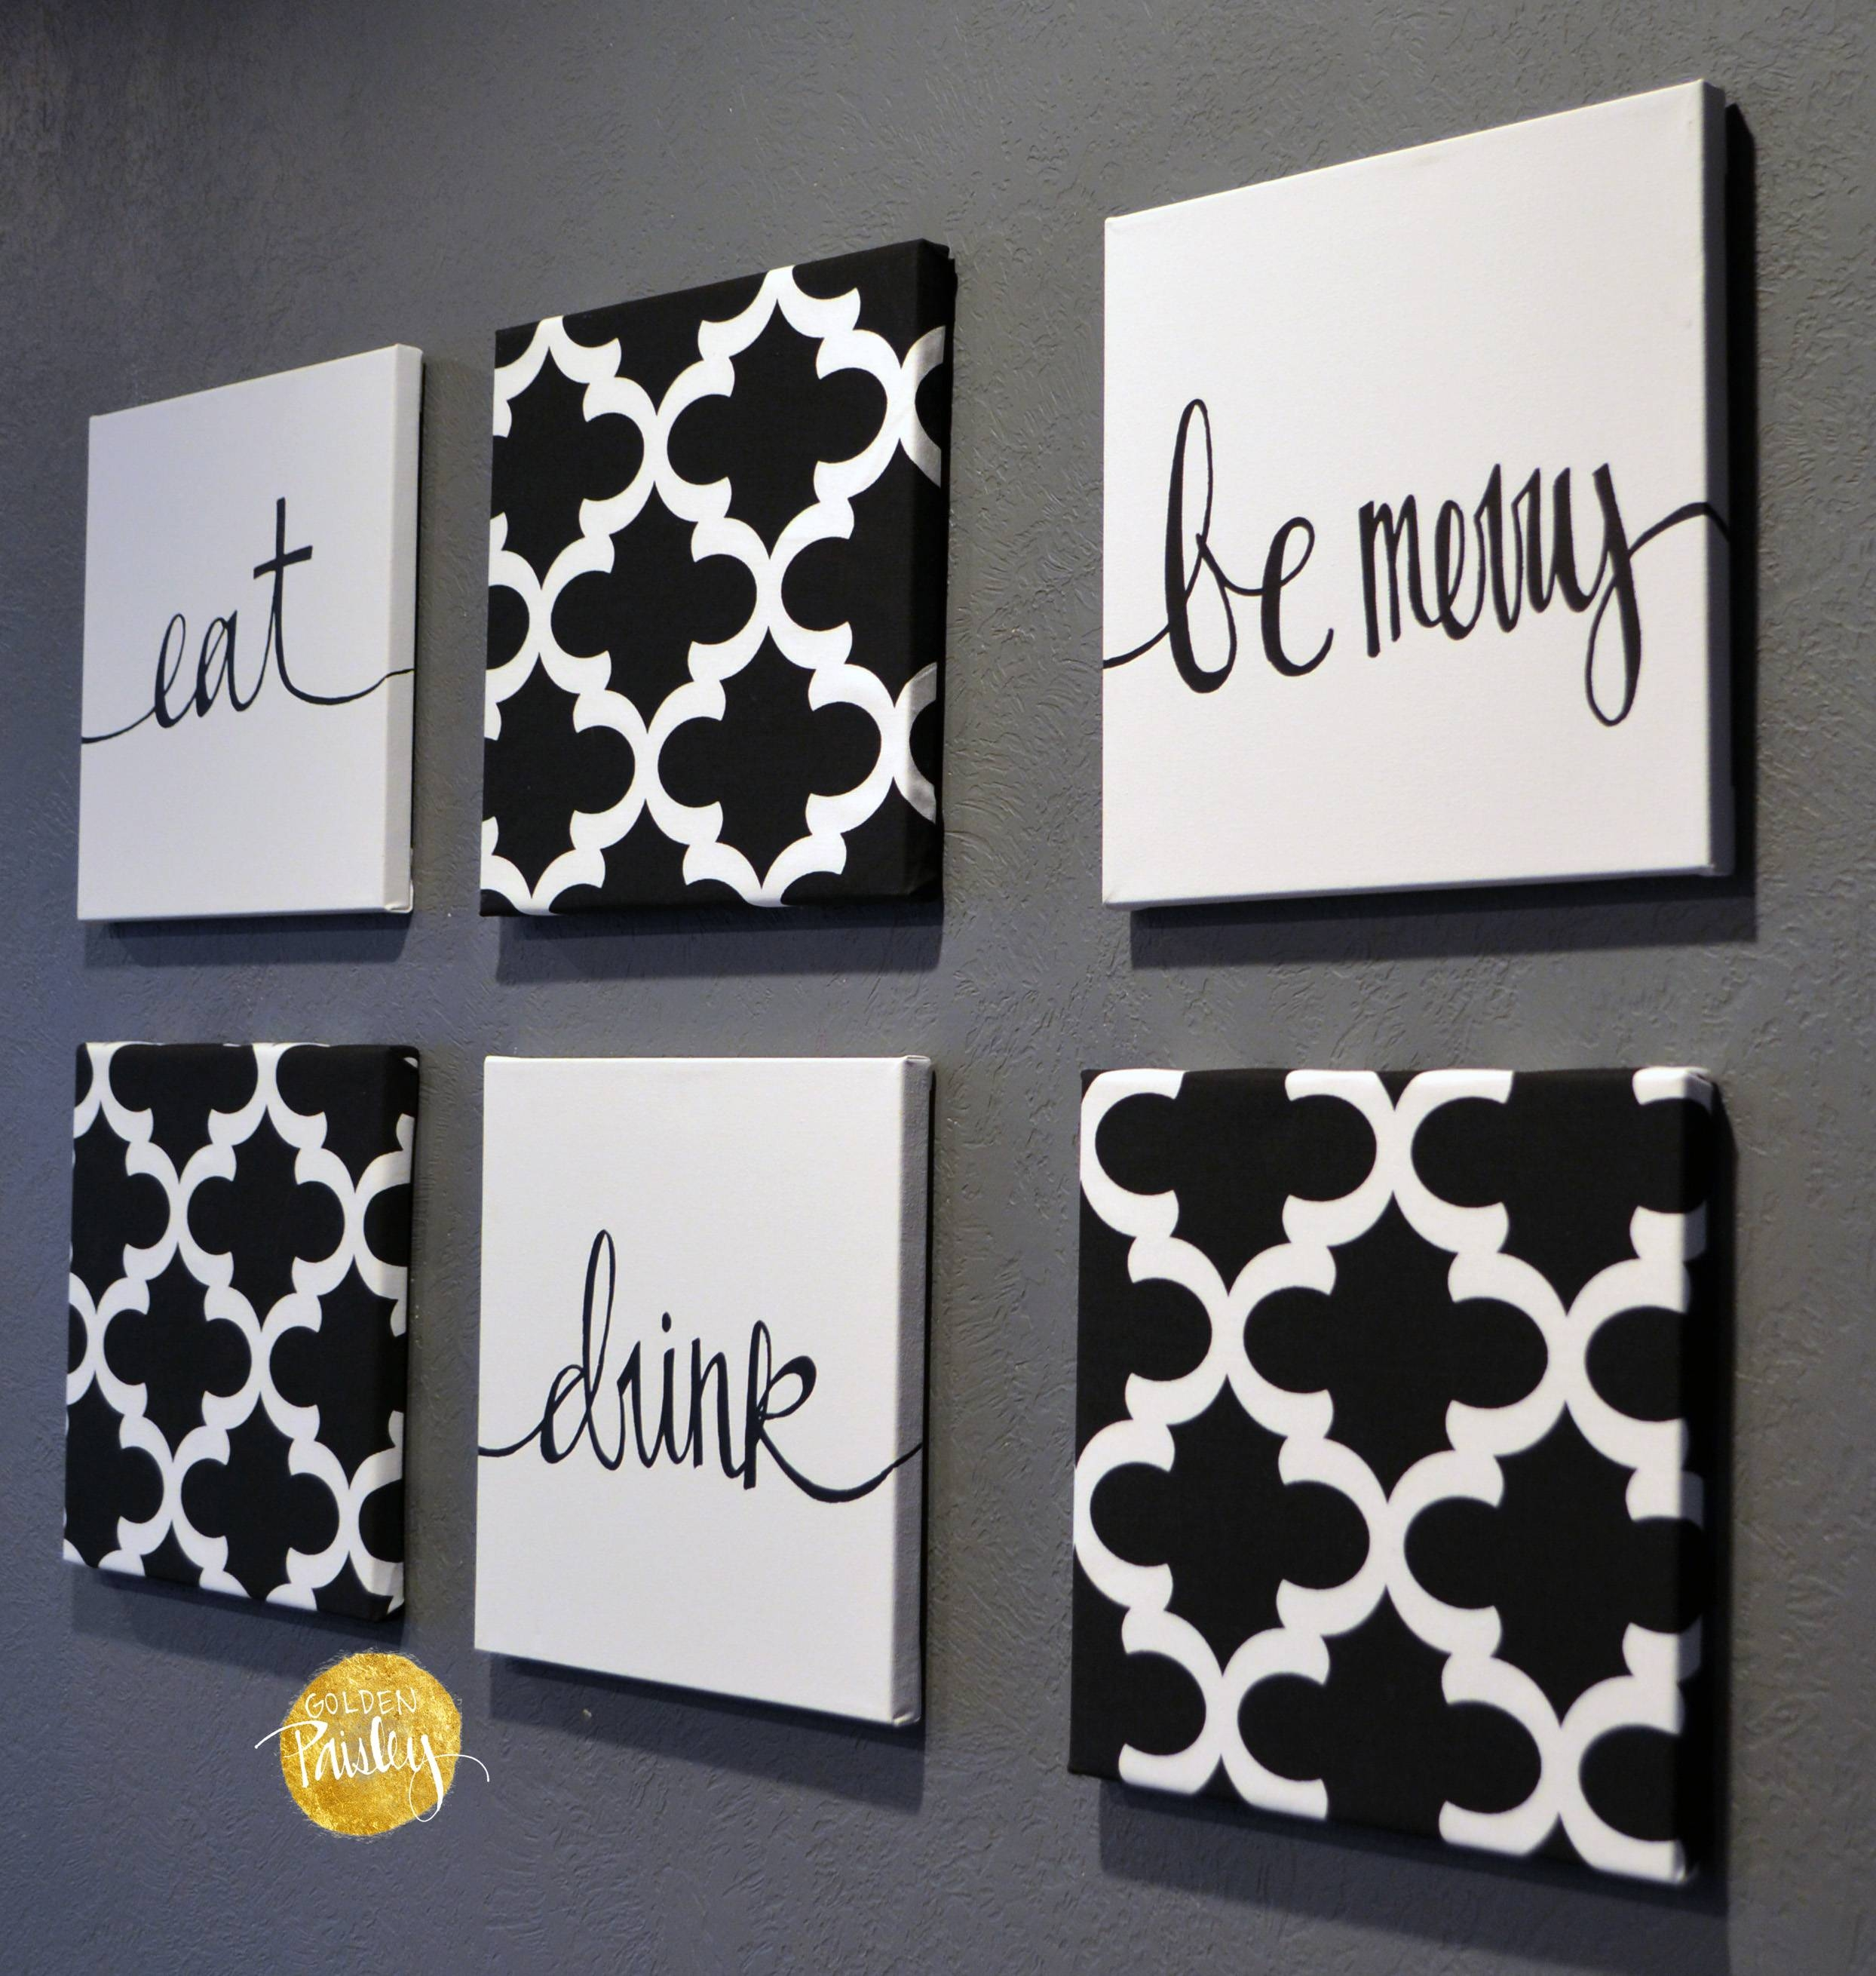 Black And White Moroccan 6 Pack Wall Art Within Best And Newest Black And White Wall Art Sets (View 3 of 20)